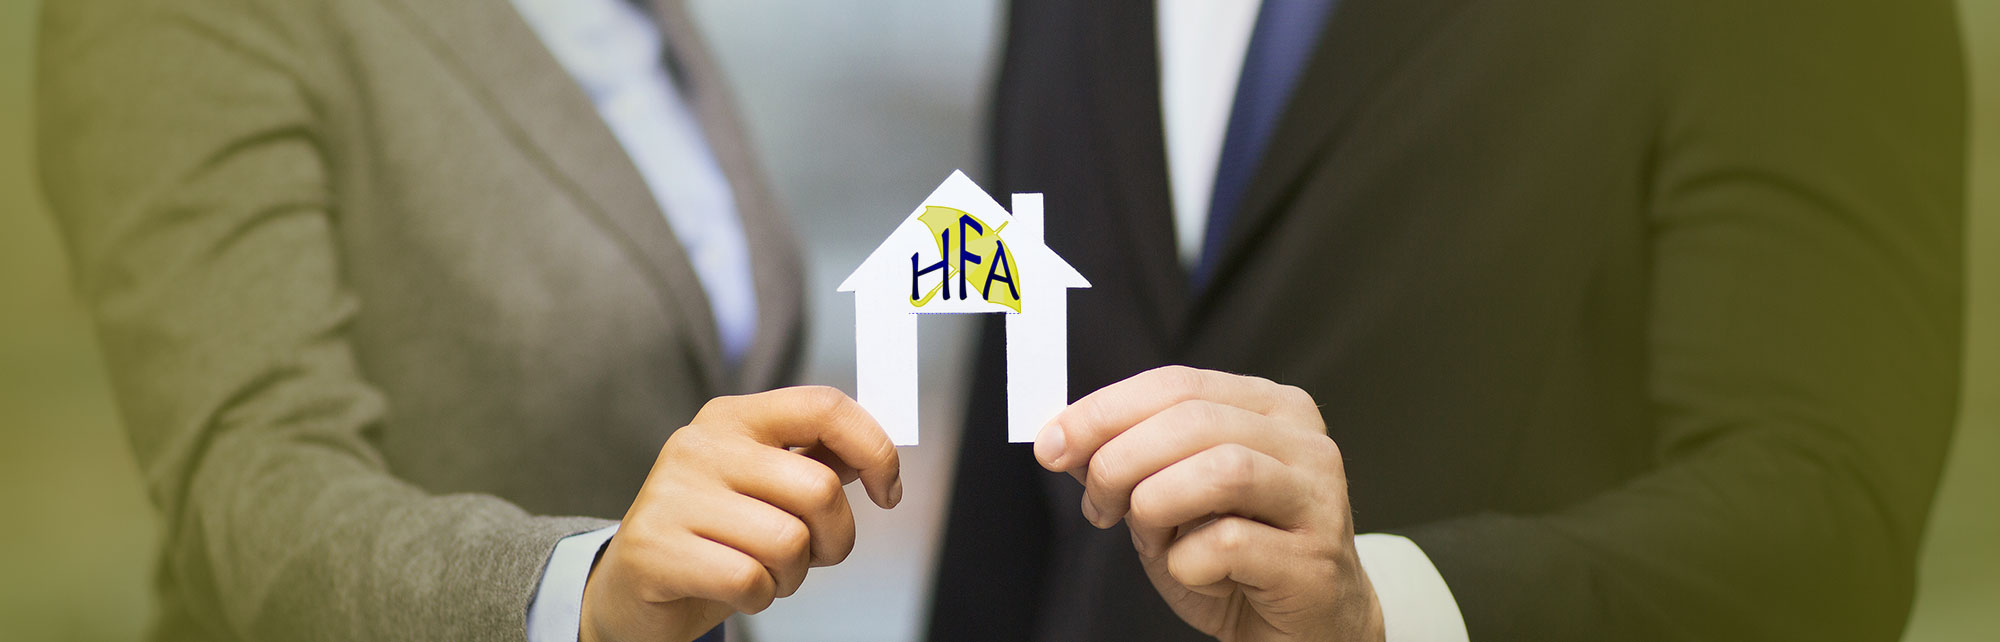 Our agency located in Cape Coral and Fort Myers, FL offers home insurance. Learn how to shop and compare homeowners insurance on our website.